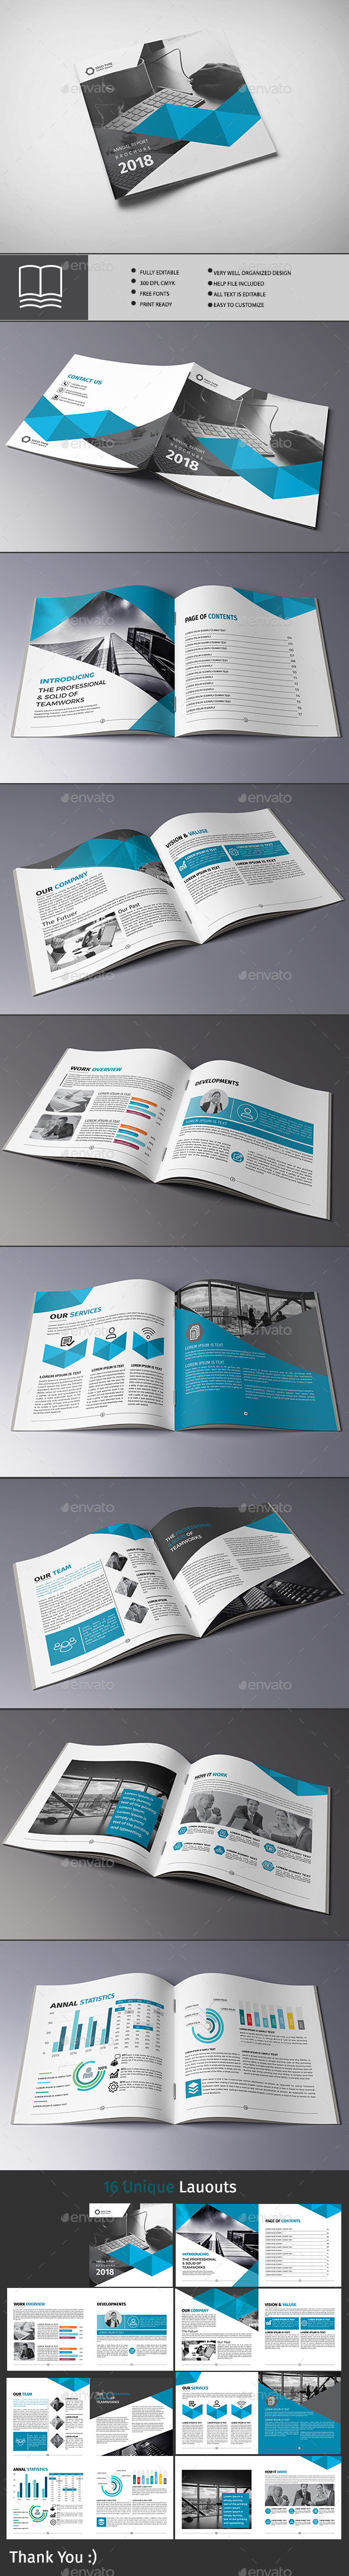 company profile Square - Brochures Print Templates